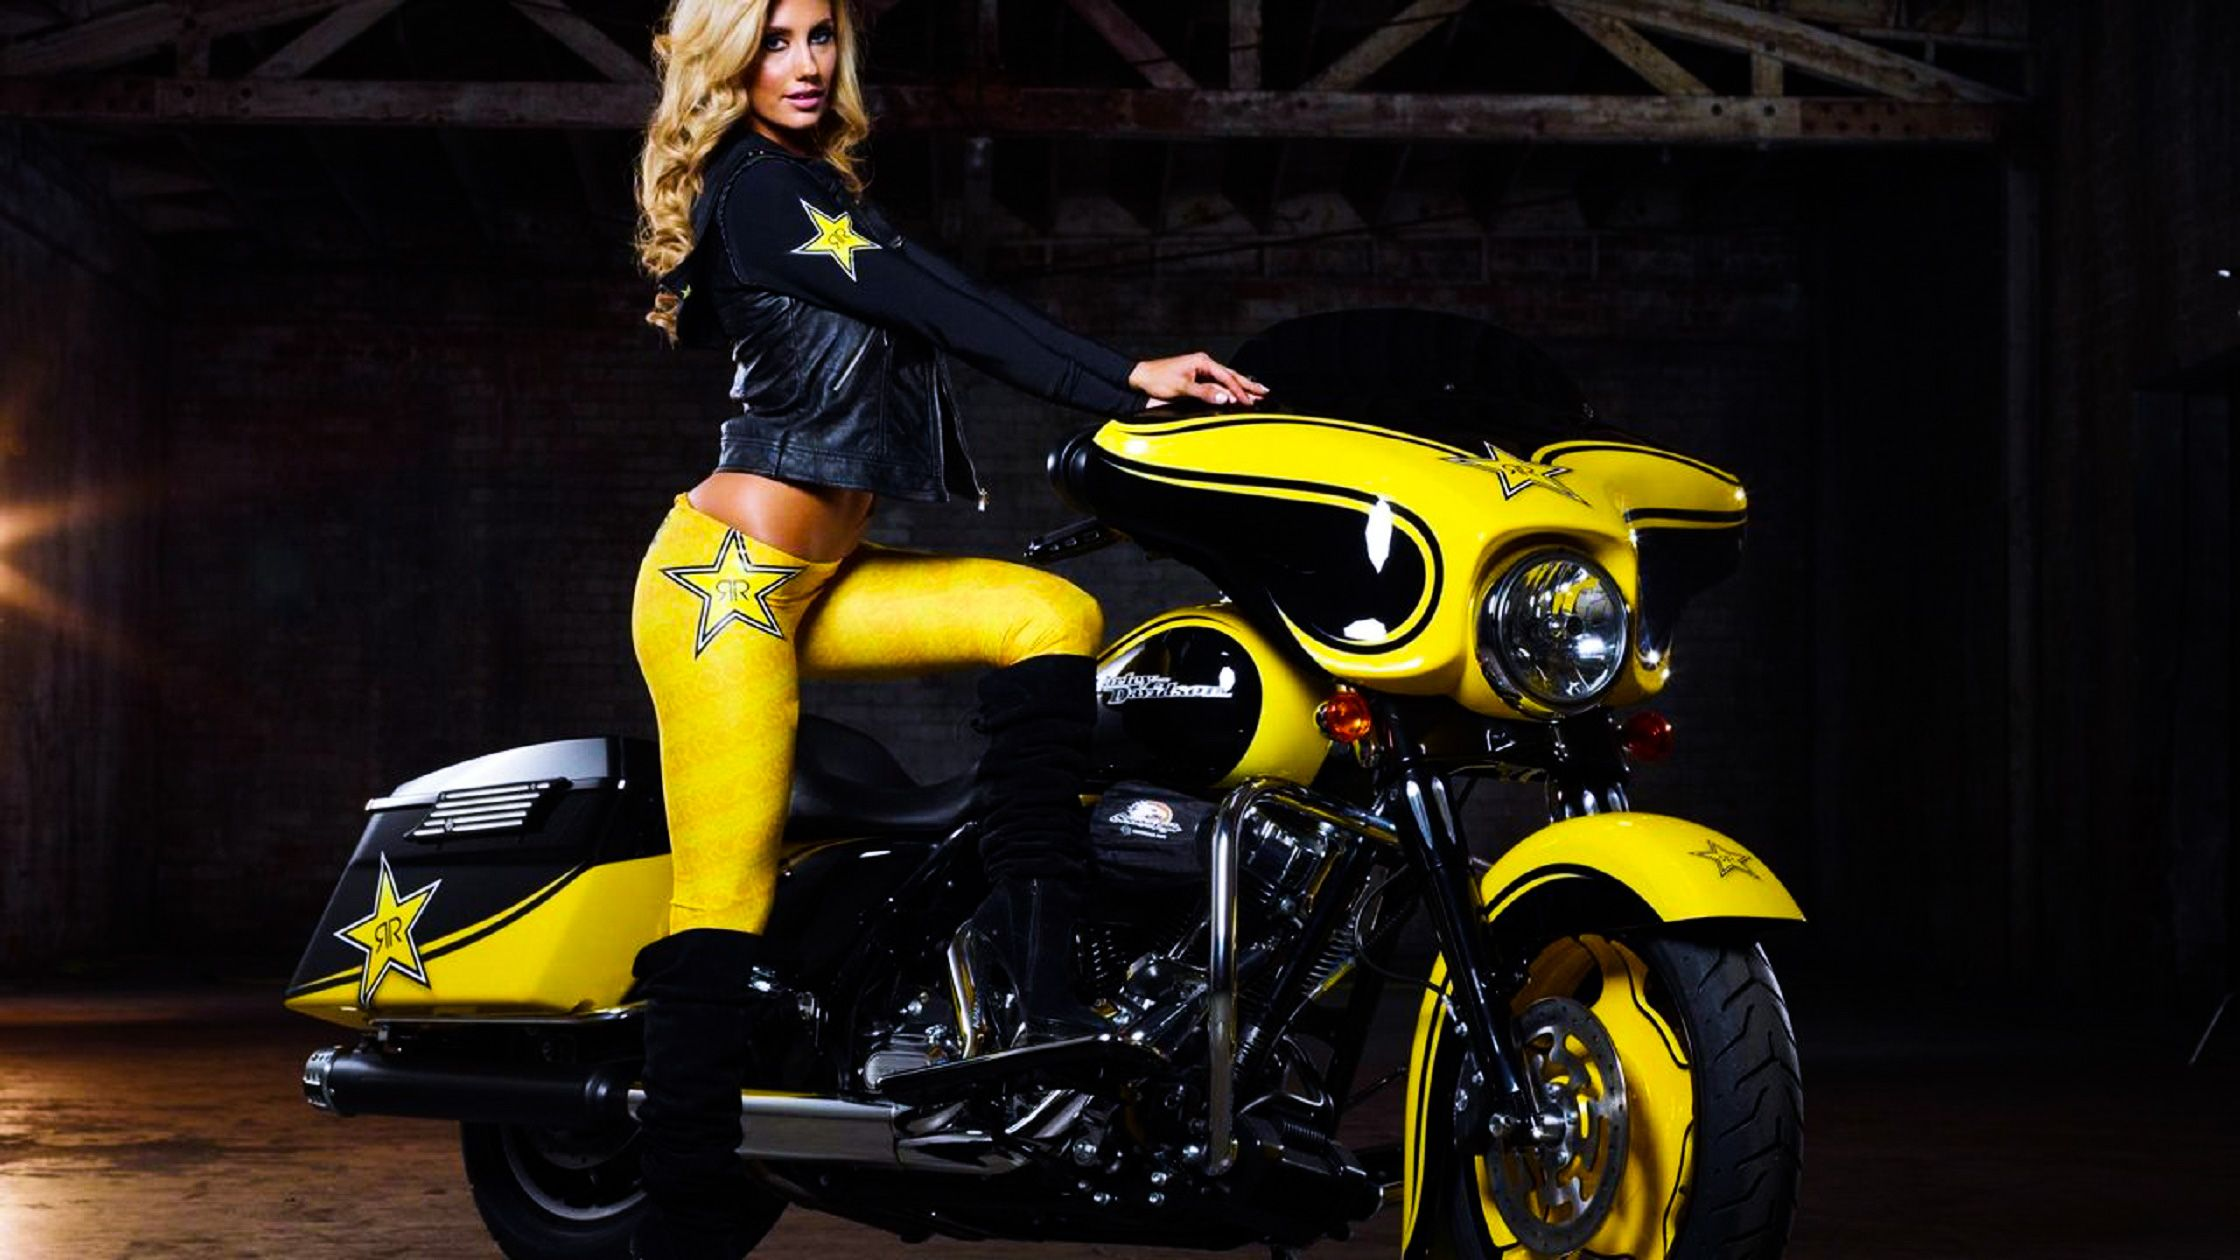 Free harley davidson babes wallpaper country music stars